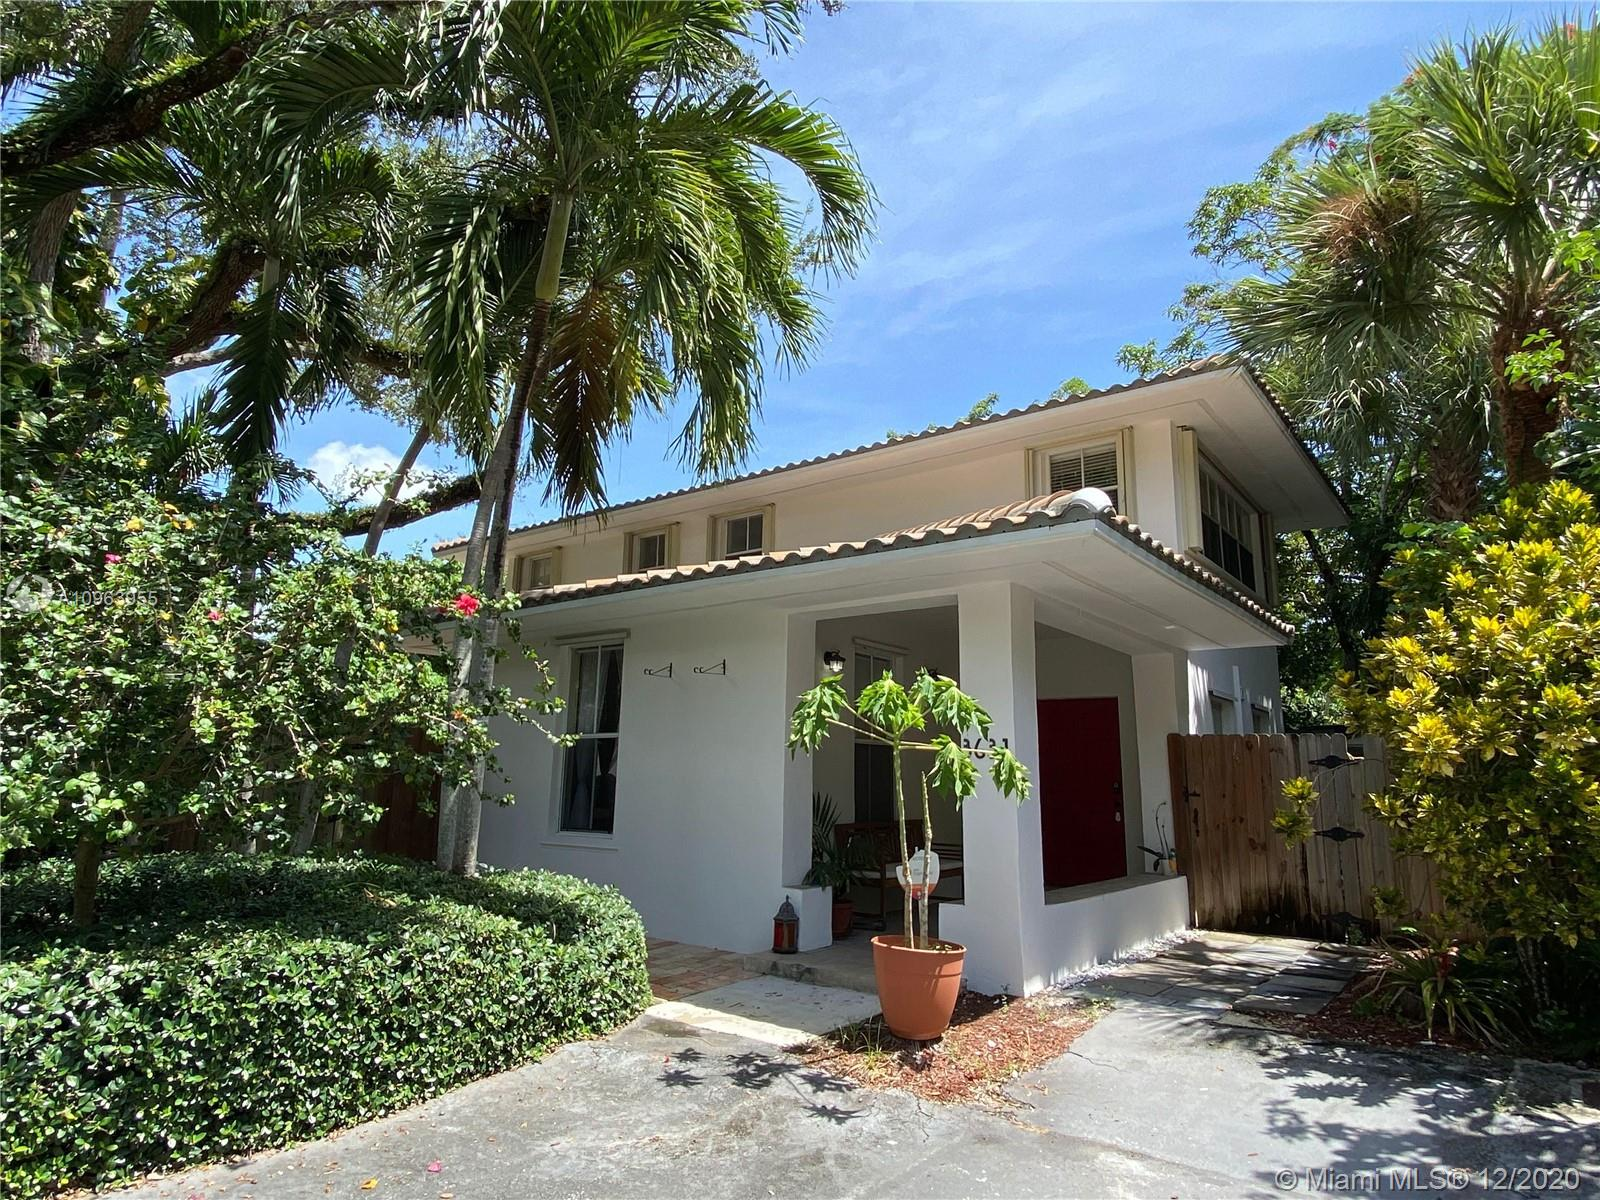 Frow Homestead - 3631 SW 37th Ave, Miami, FL 33133